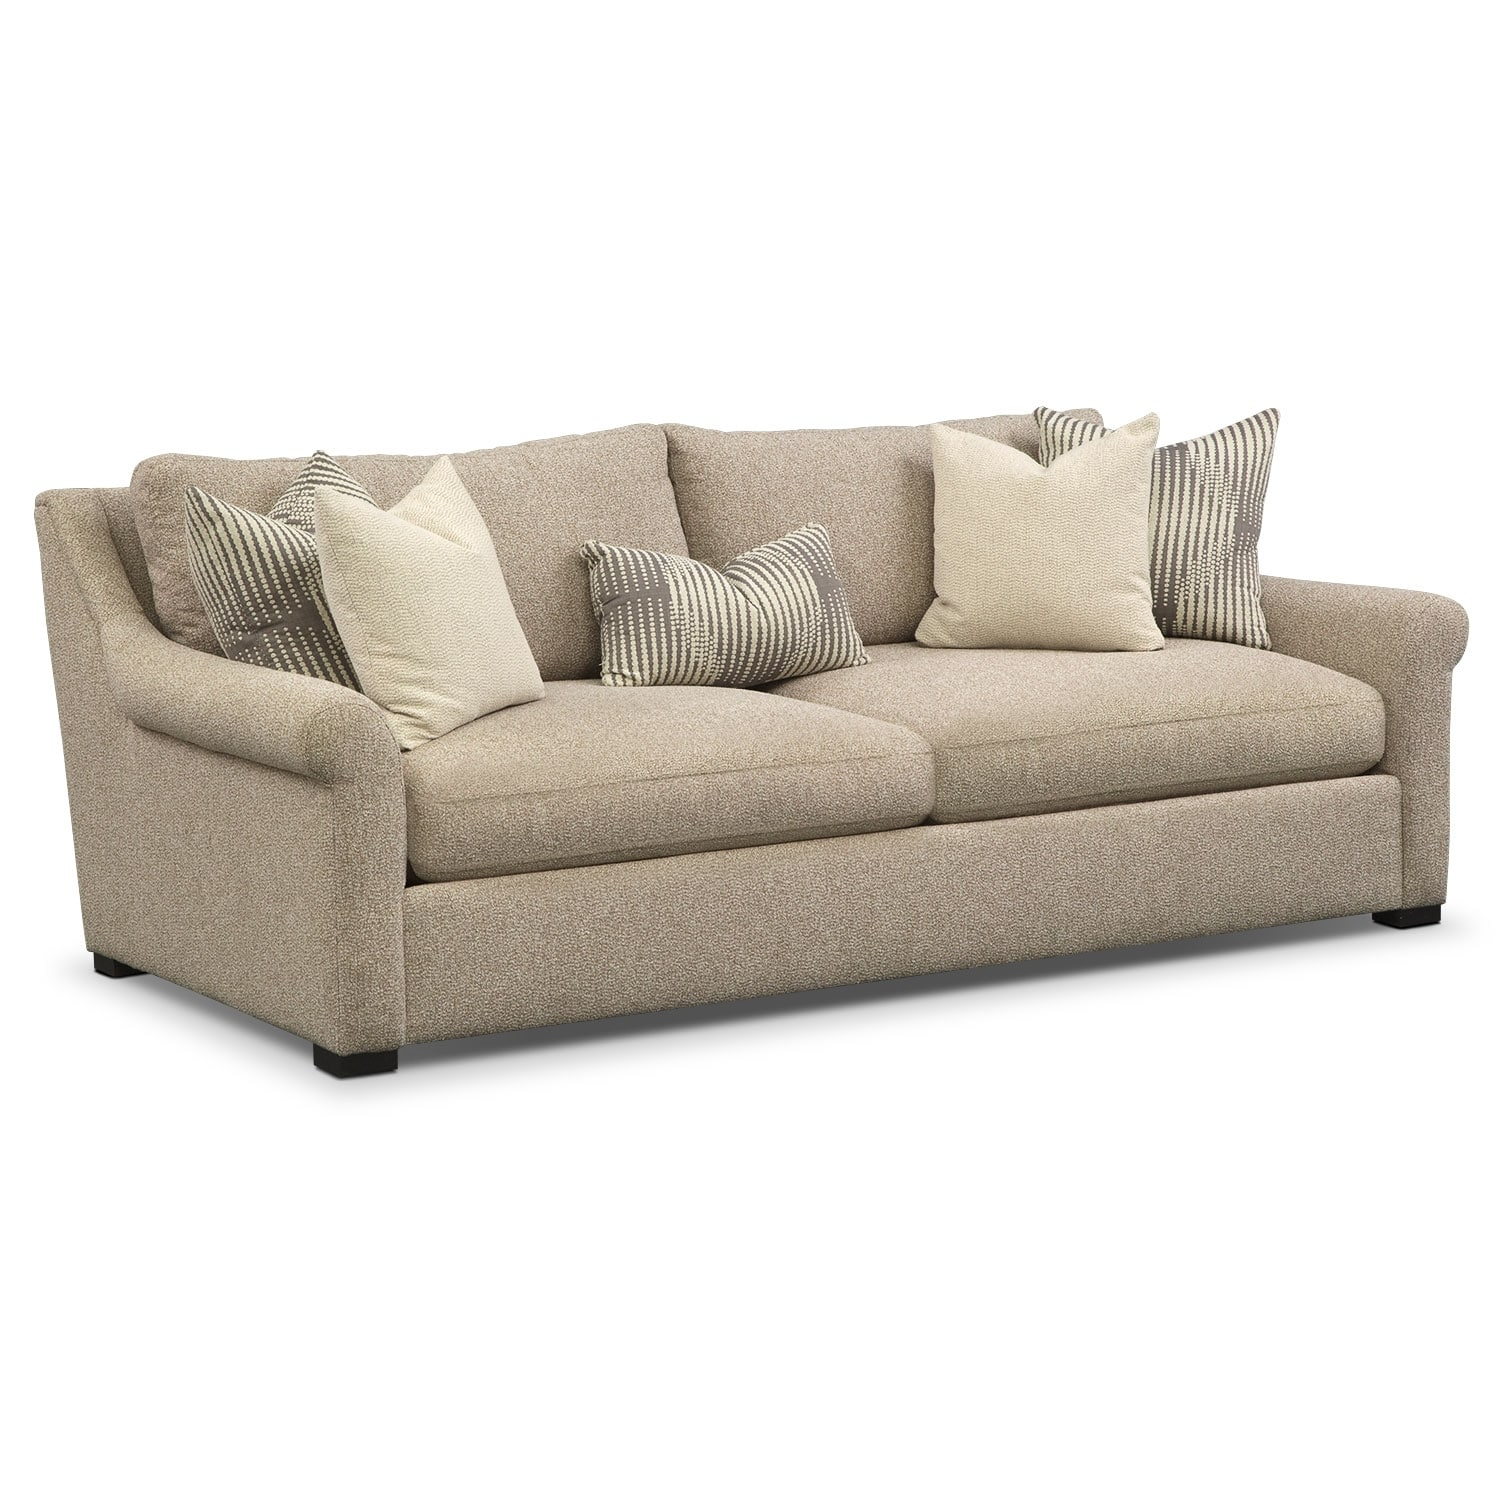 loveseat and chair a half shower with back arms robertson comfort sofa set